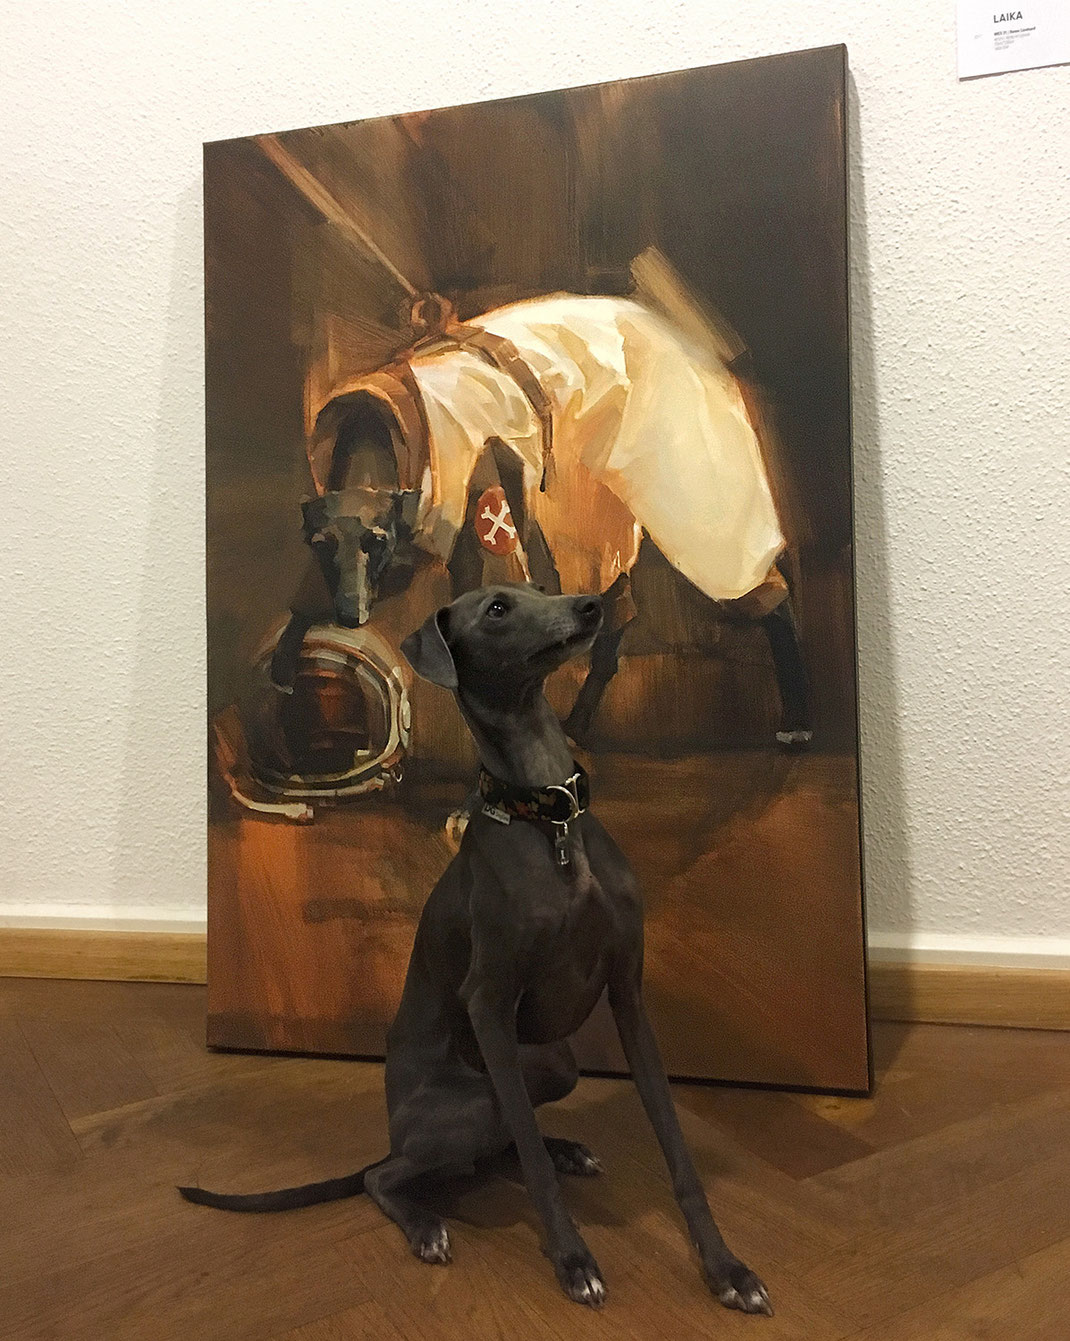 """LAIKA"" Wes21 Schwarzmaler / Remo Lienhard painting on canvas"